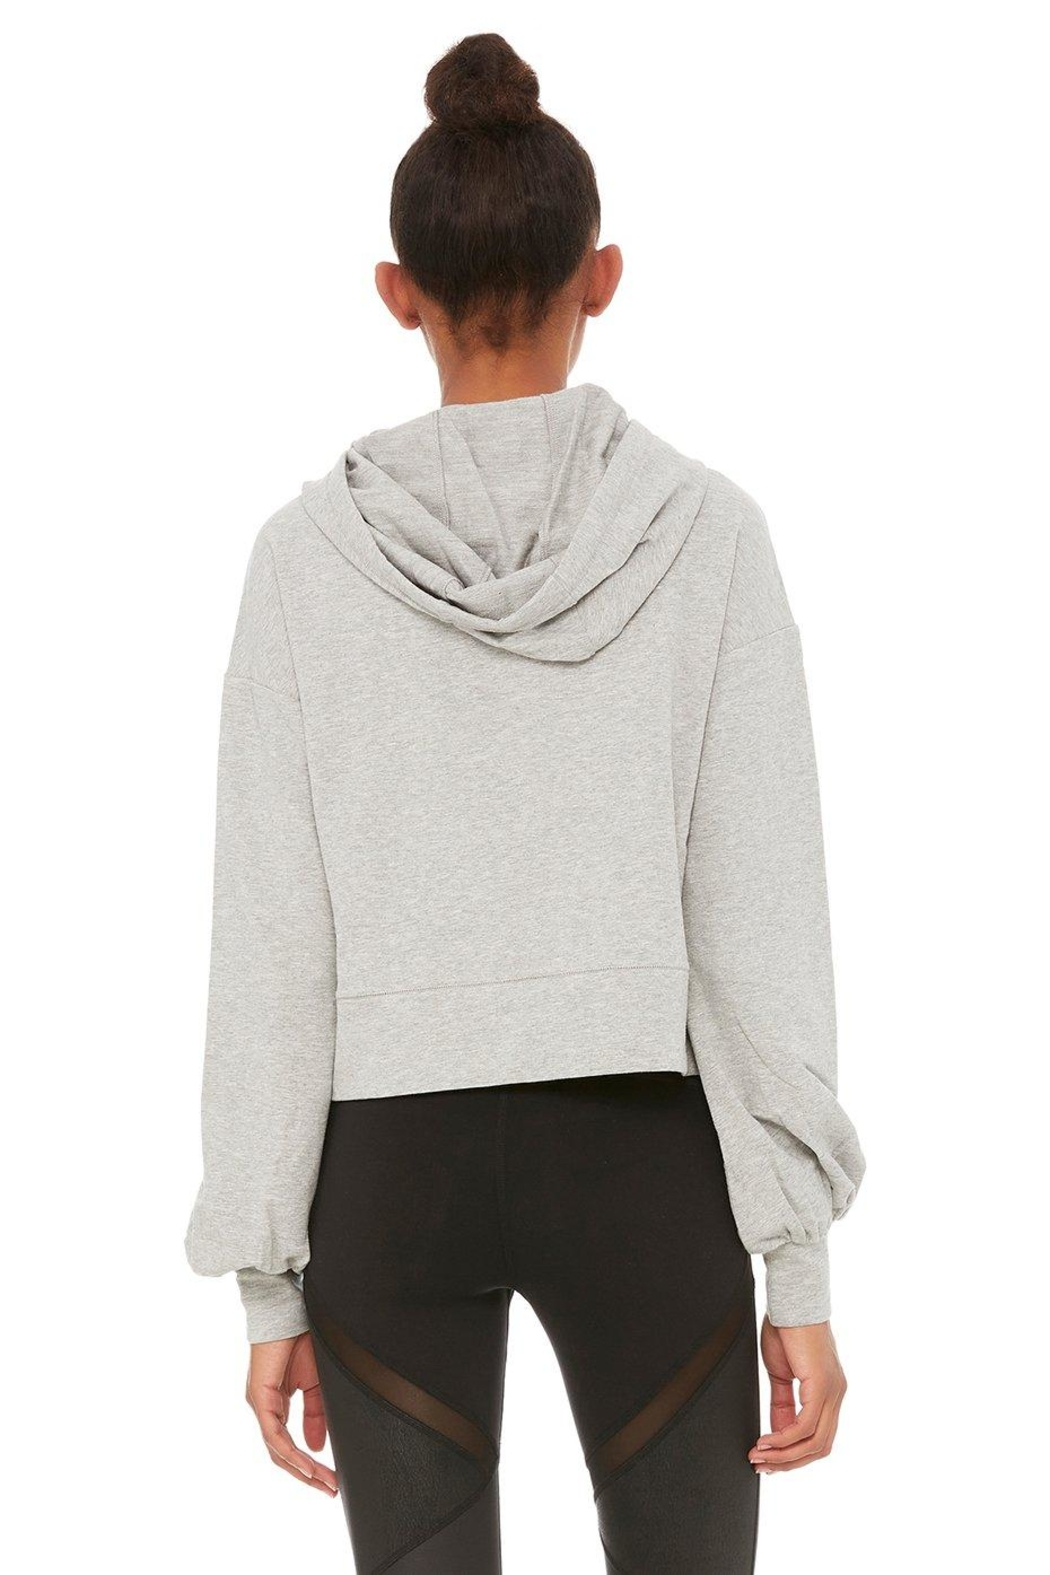 ALO Yoga Social Hooded Top - Front Full Image